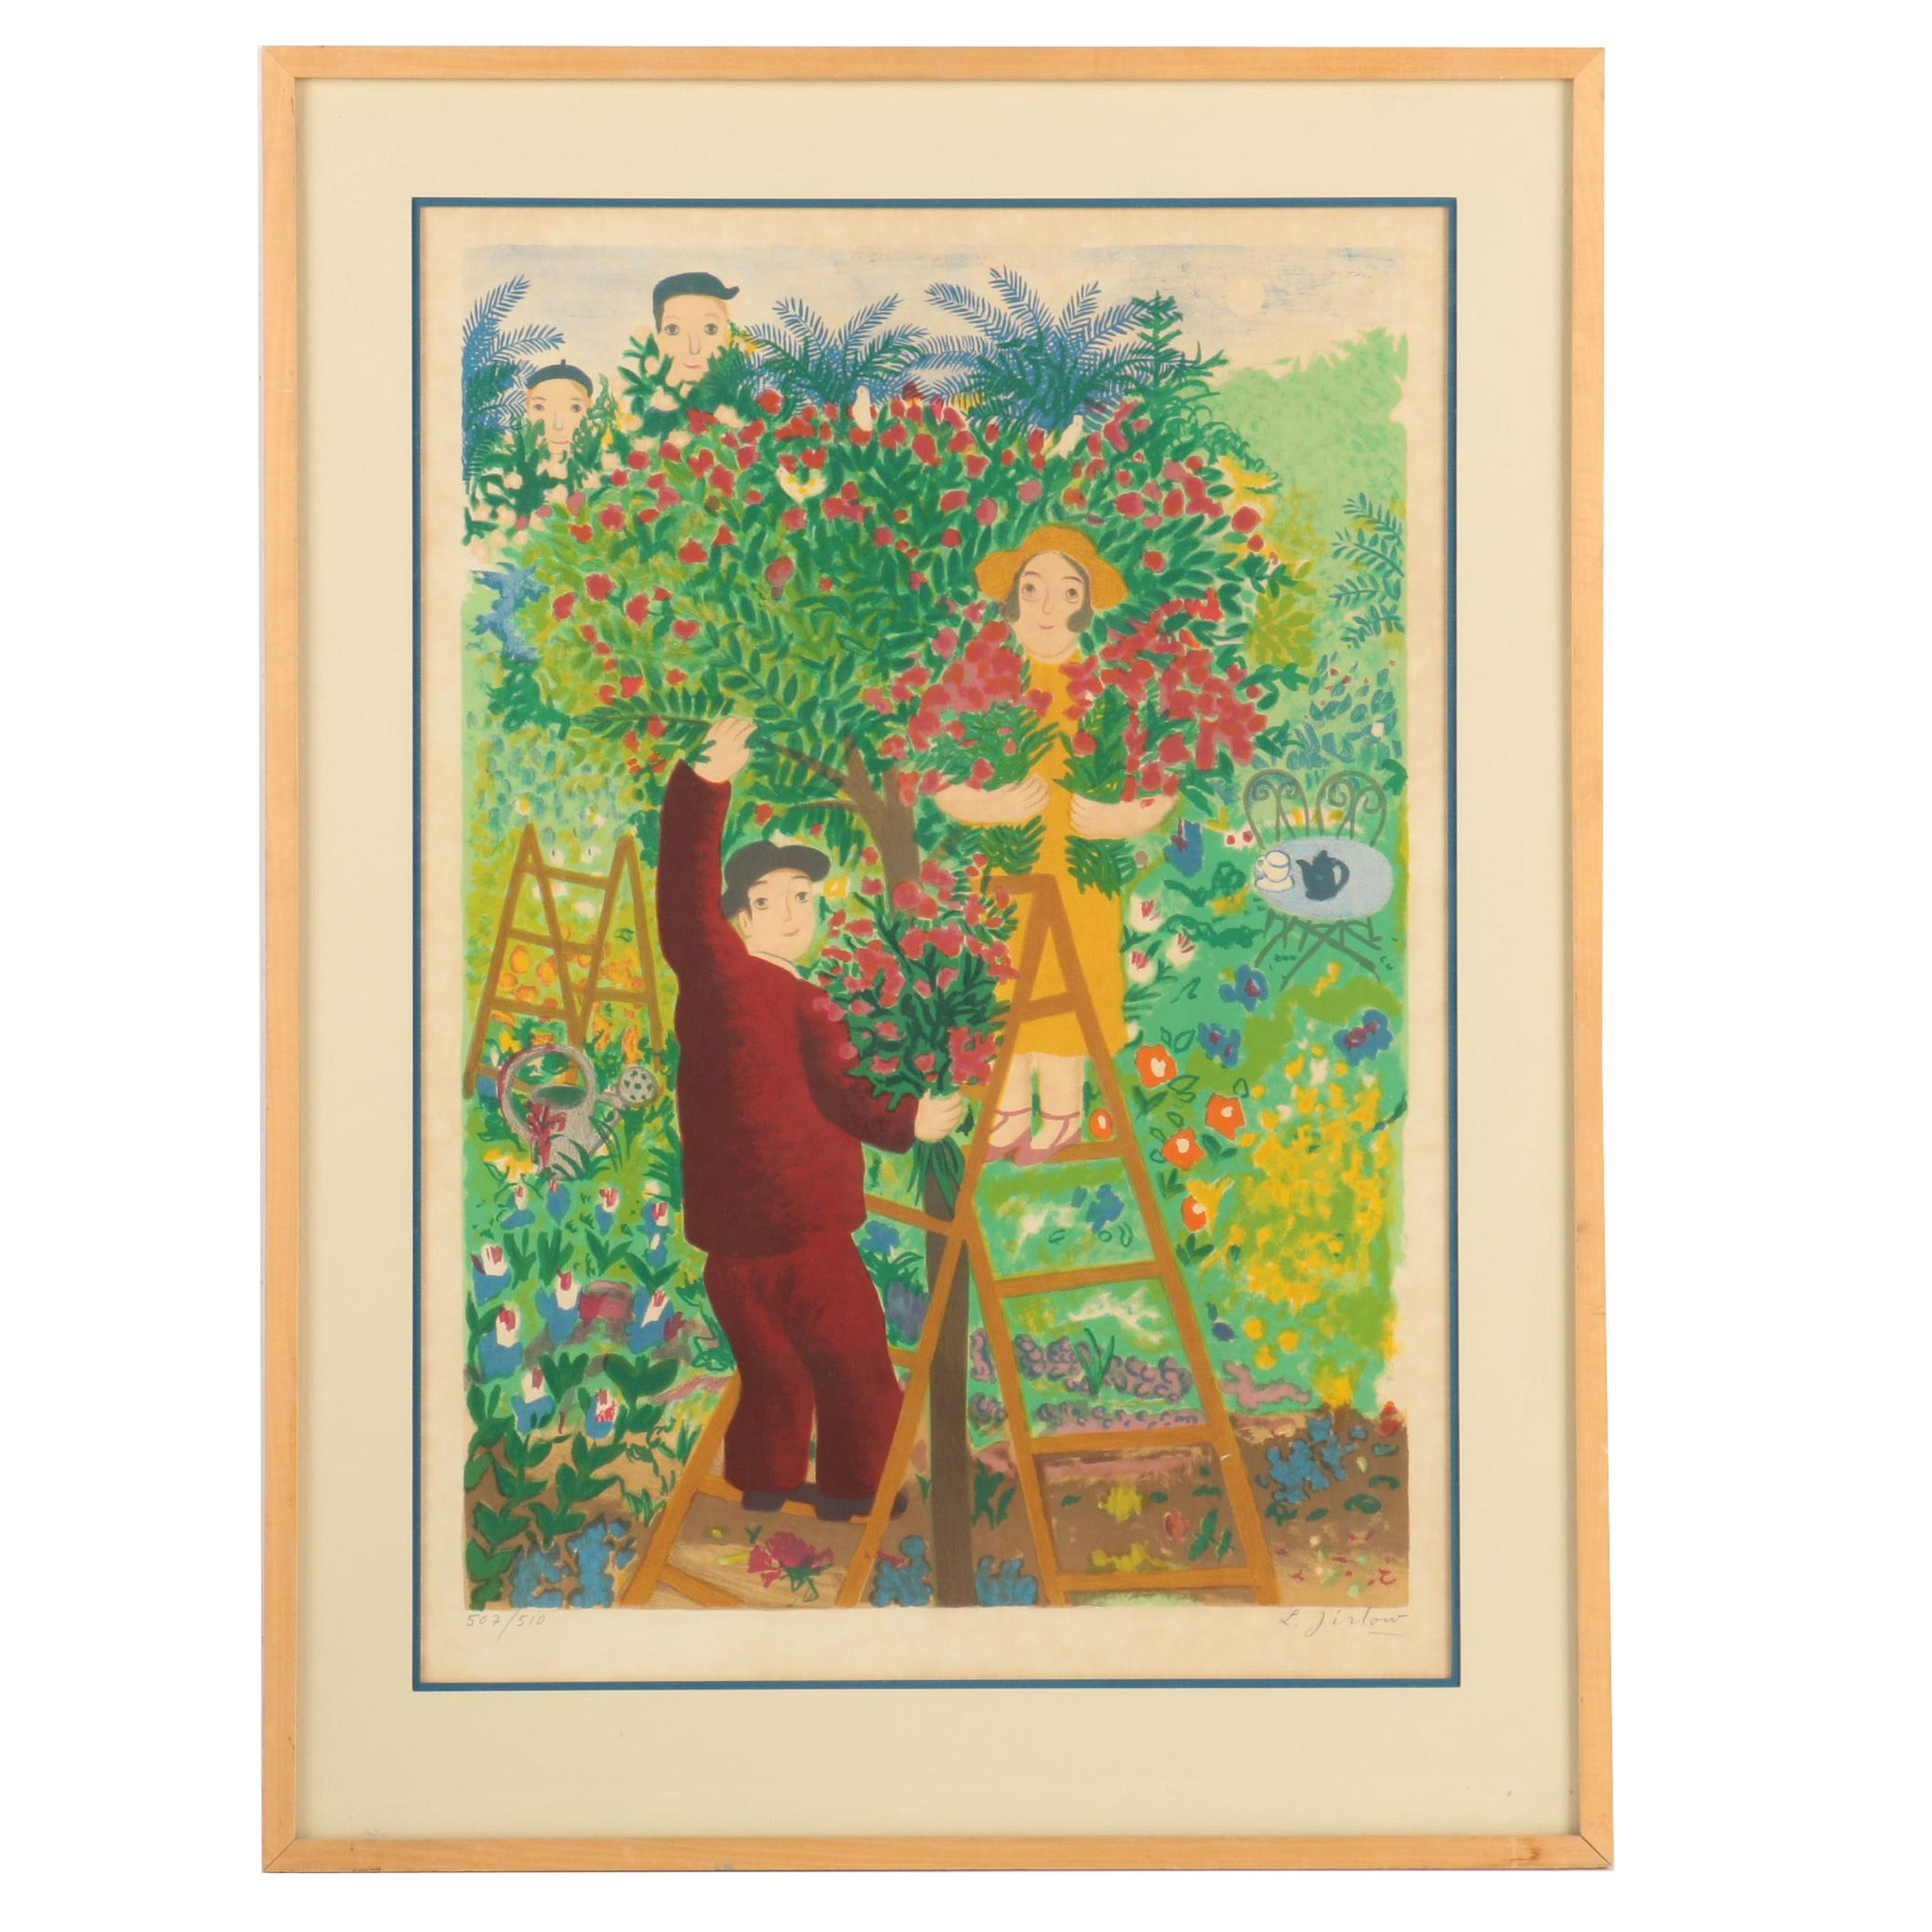 Lennart Jirlow Limited Edition Lithograph of Flower-Pickers